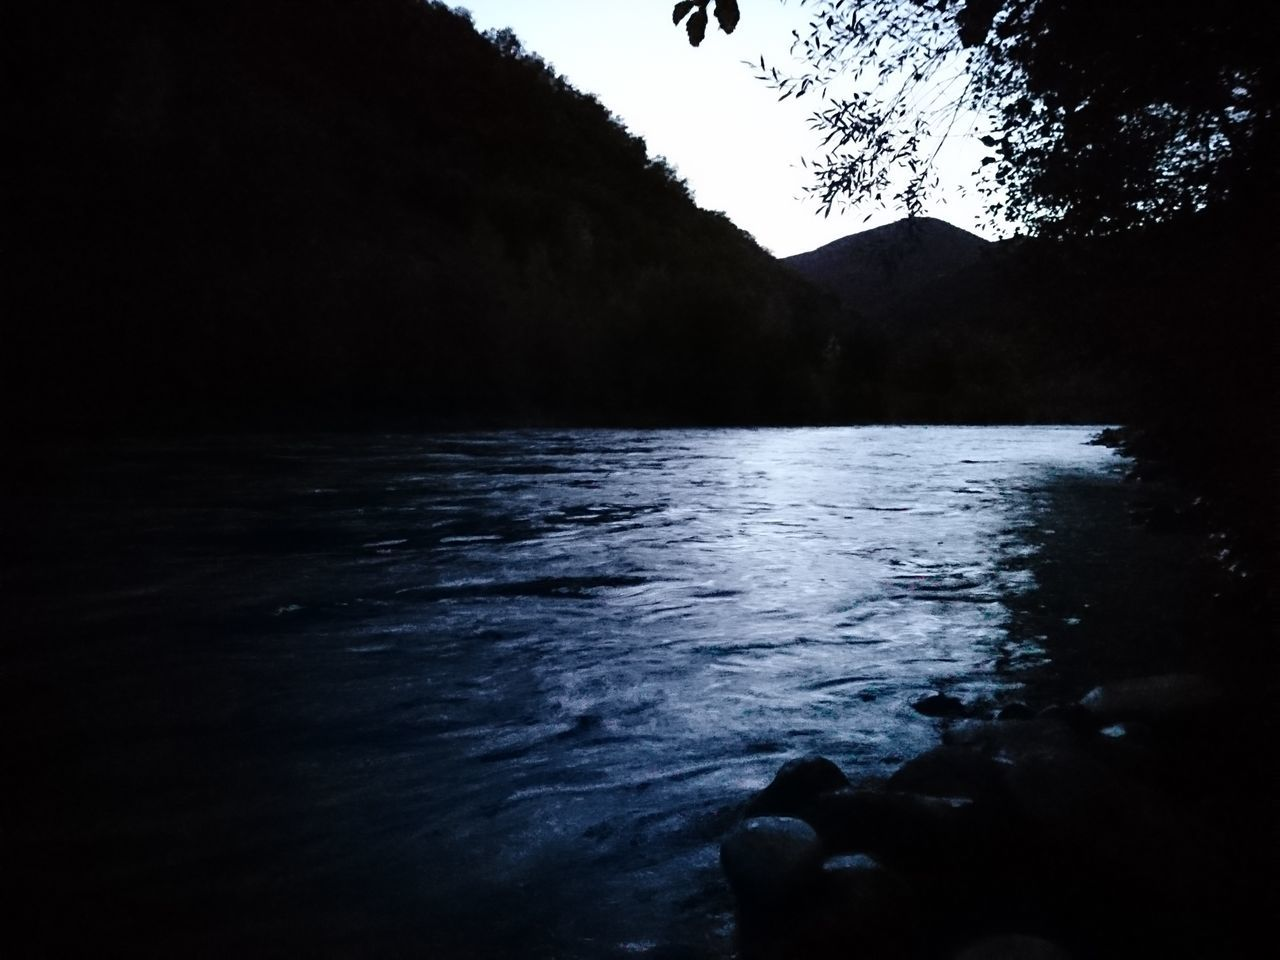 water, mountain, nature, silhouette, tranquility, beauty in nature, scenics, tranquil scene, outdoors, lake, no people, day, sky, tree